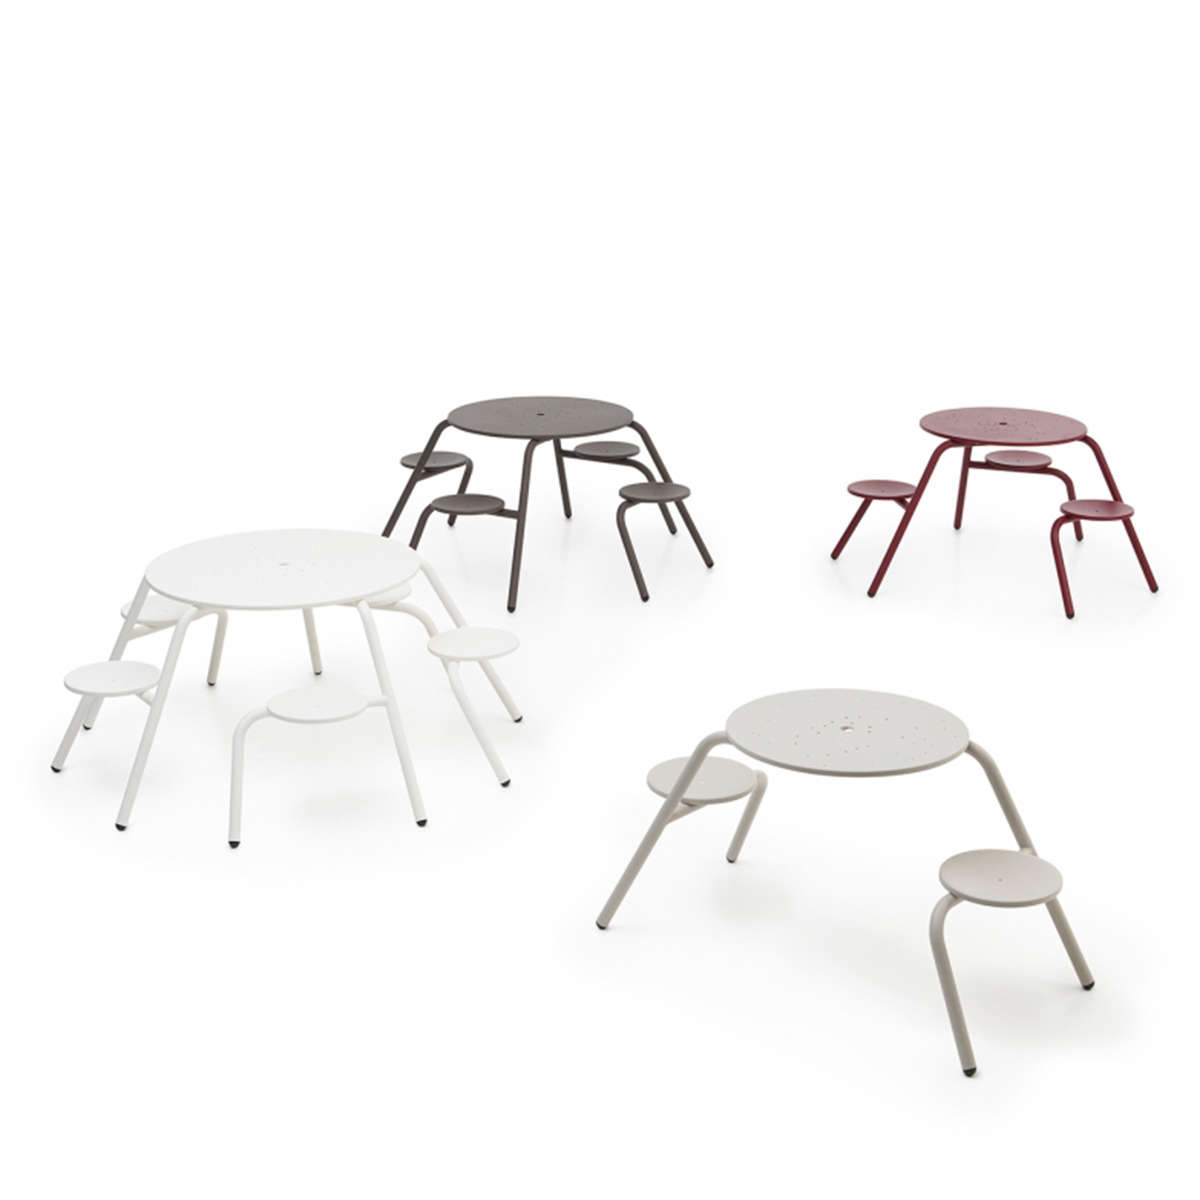 Extremis Virus Outdoor Table